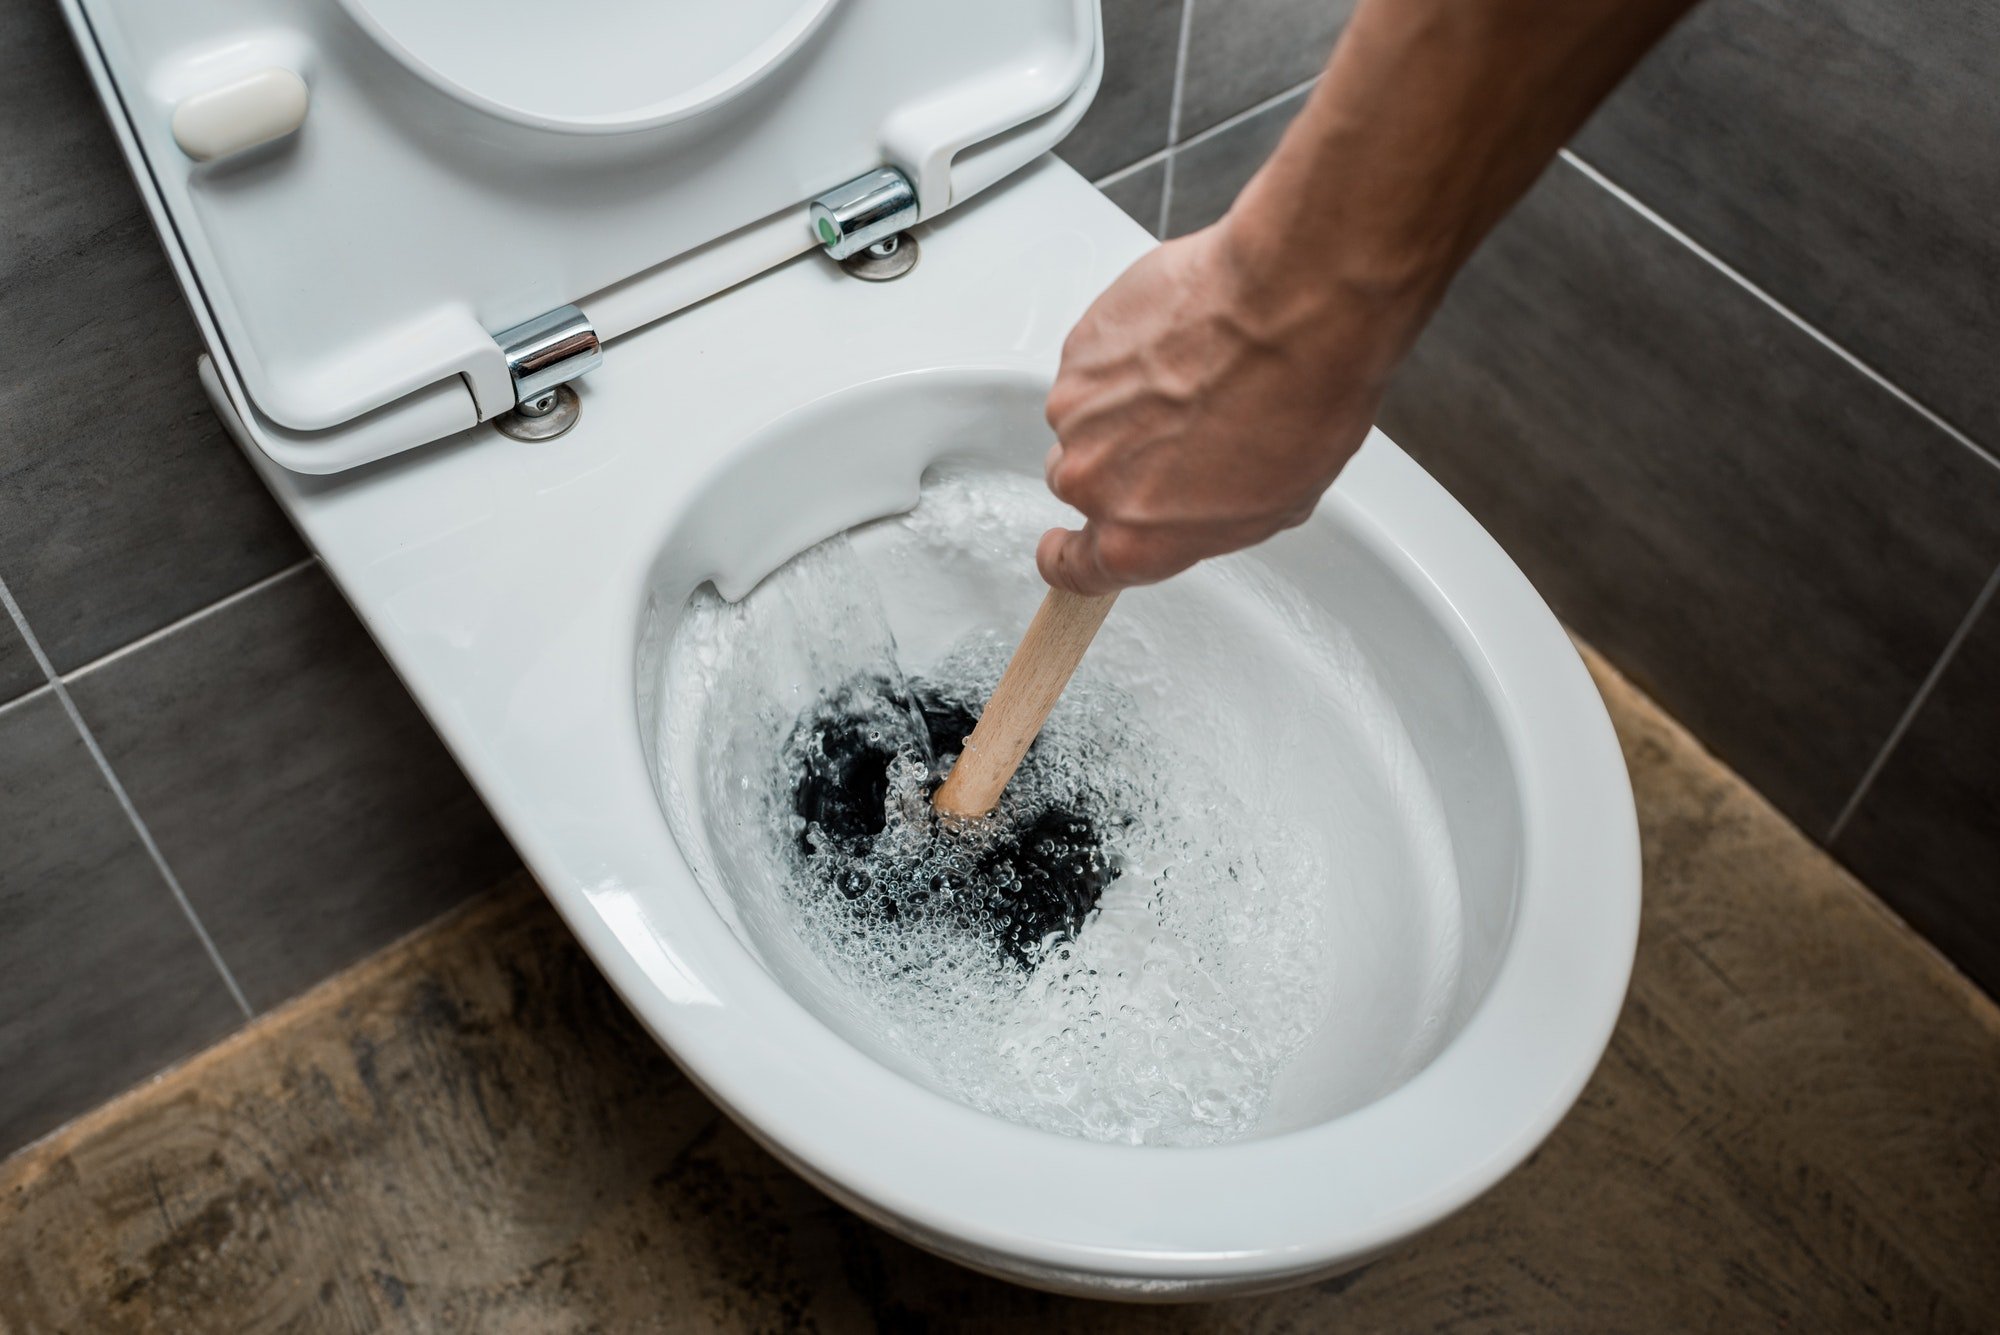 cropped view of plumber using plunger in toilet bowl during flushing in modern restroom with grey